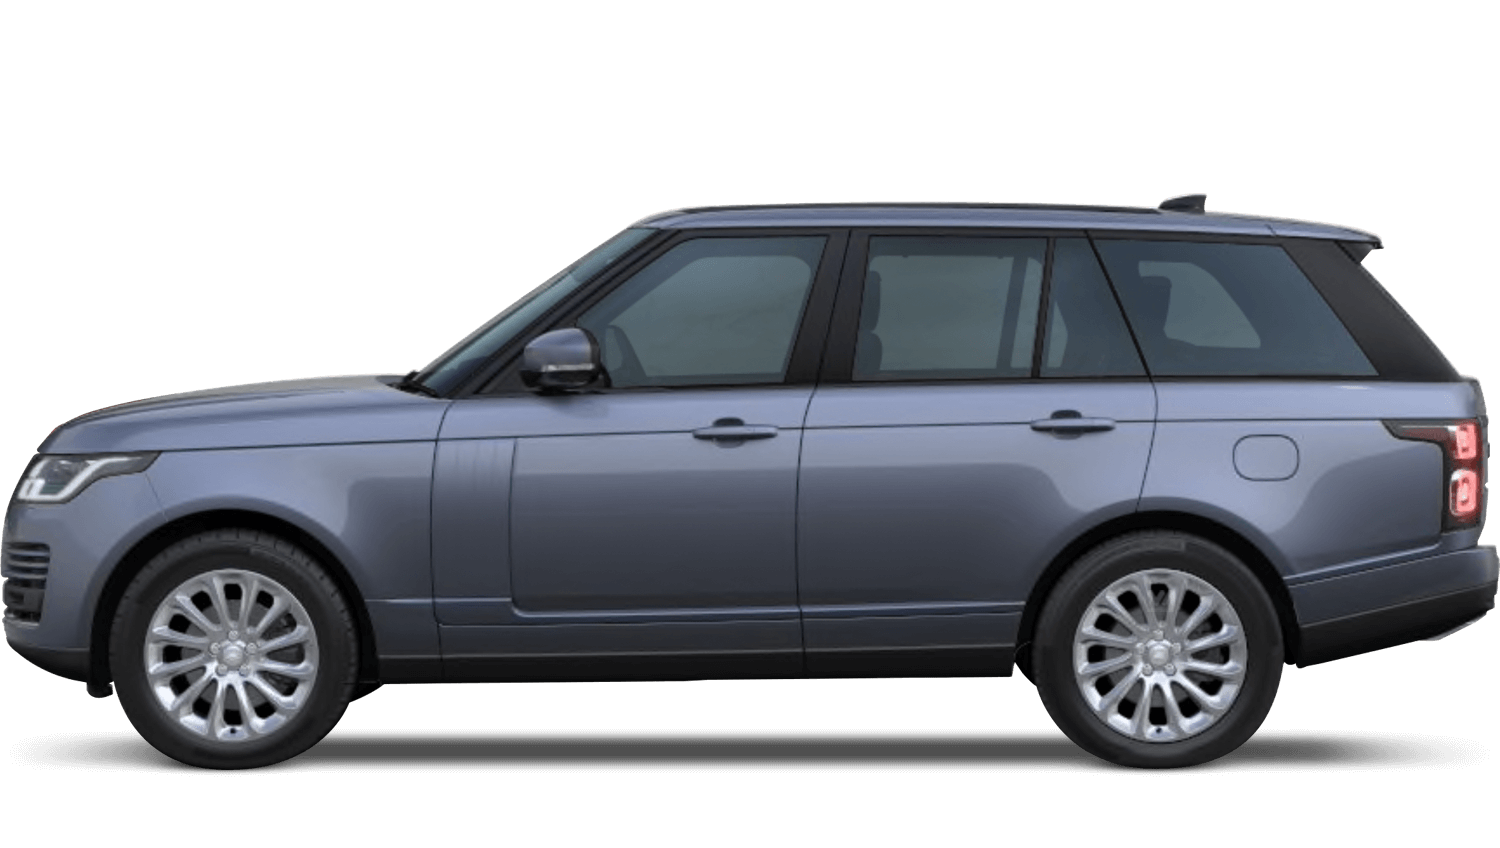 Land Rover Range Rover Business Offers